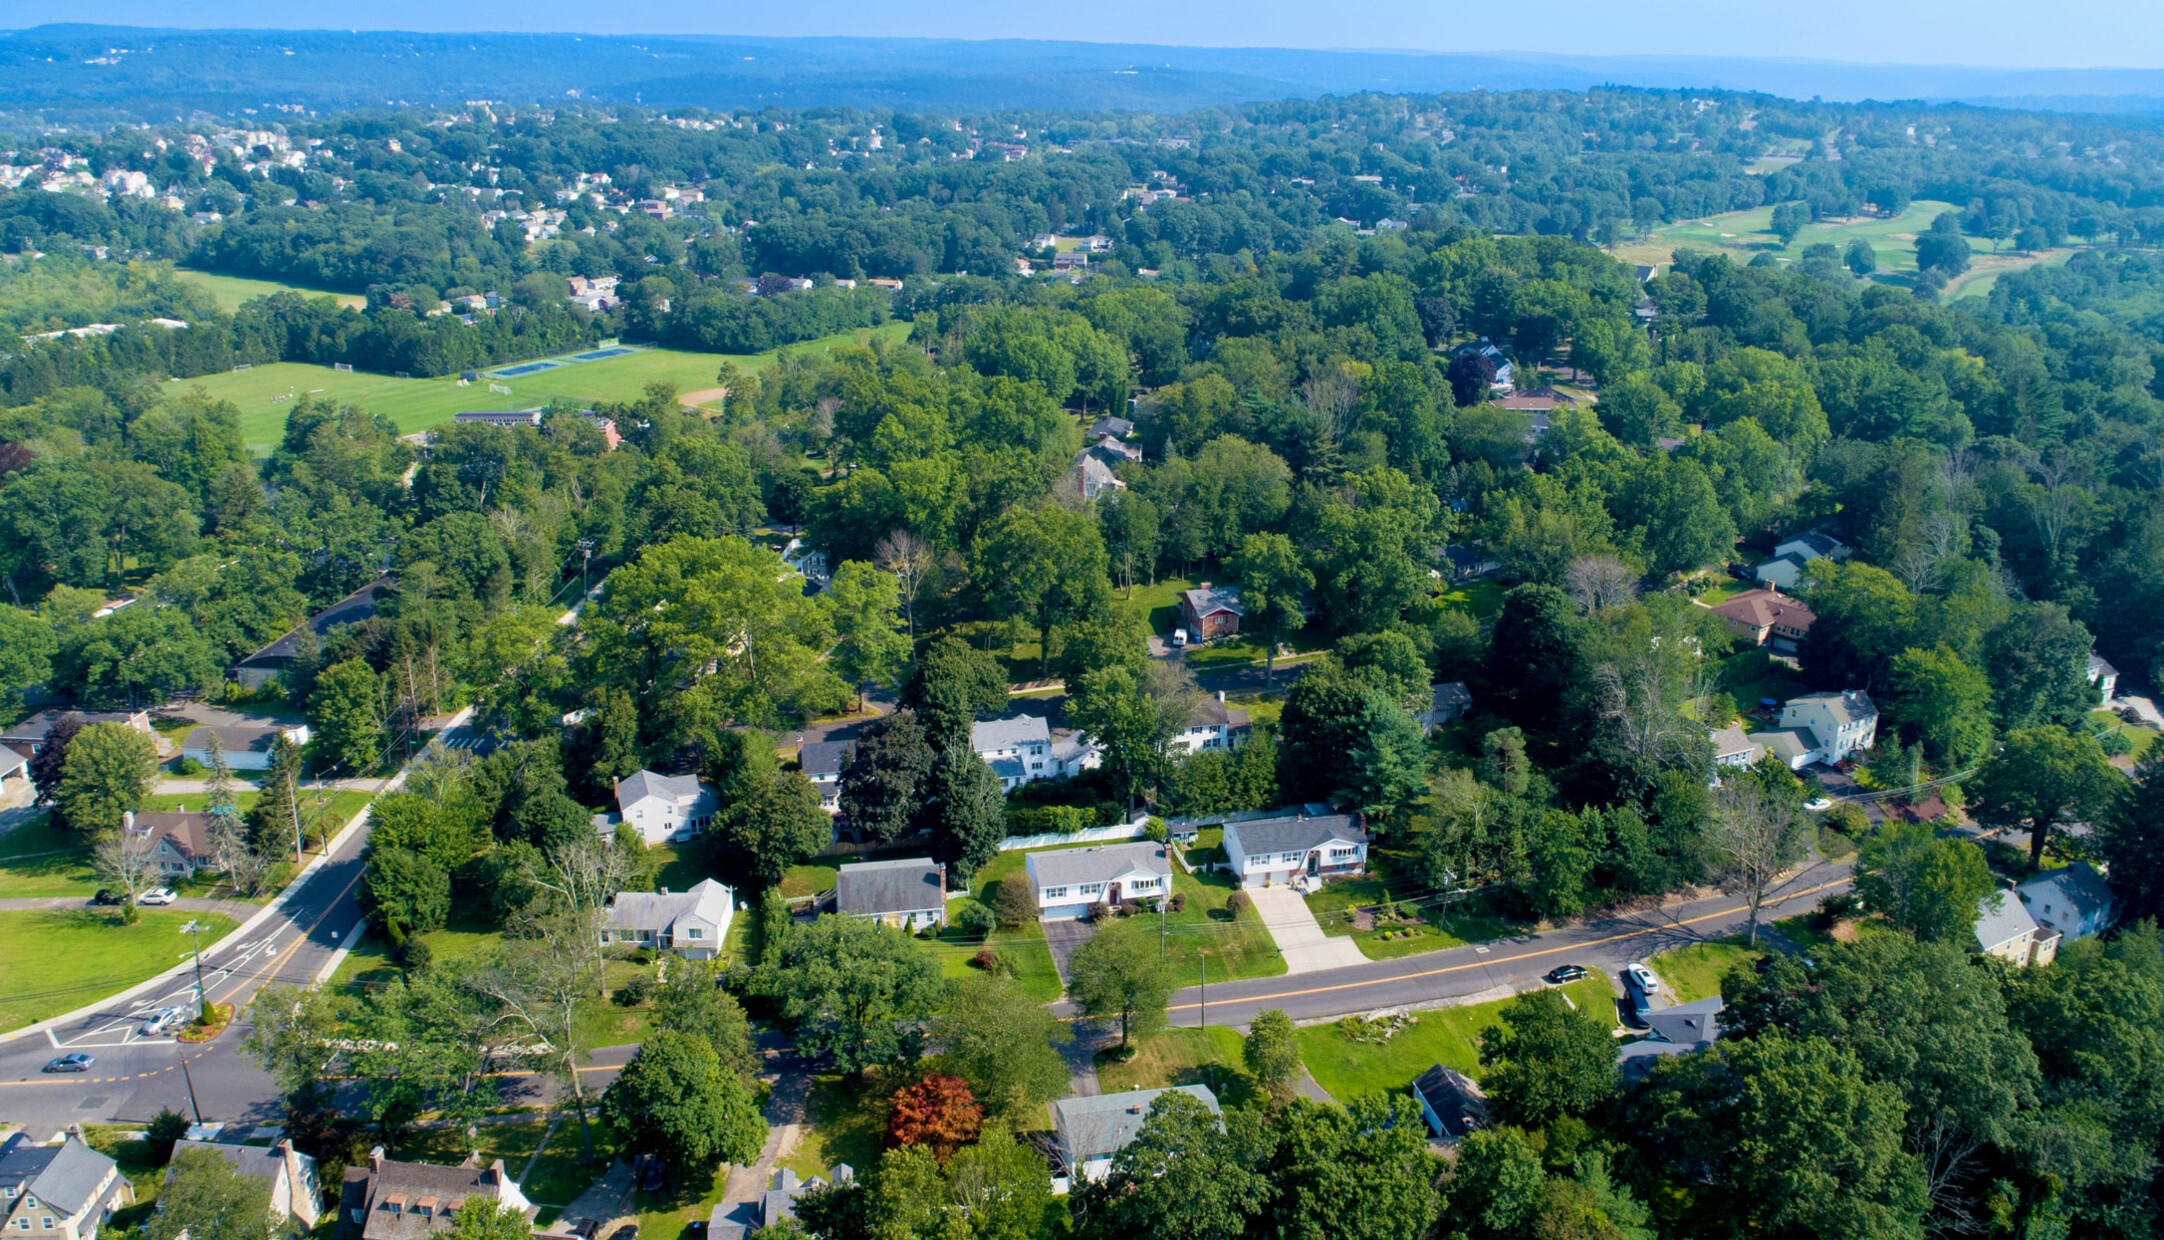 An aerial view of houses and streets in the Country Club neighborhood of Waterbury